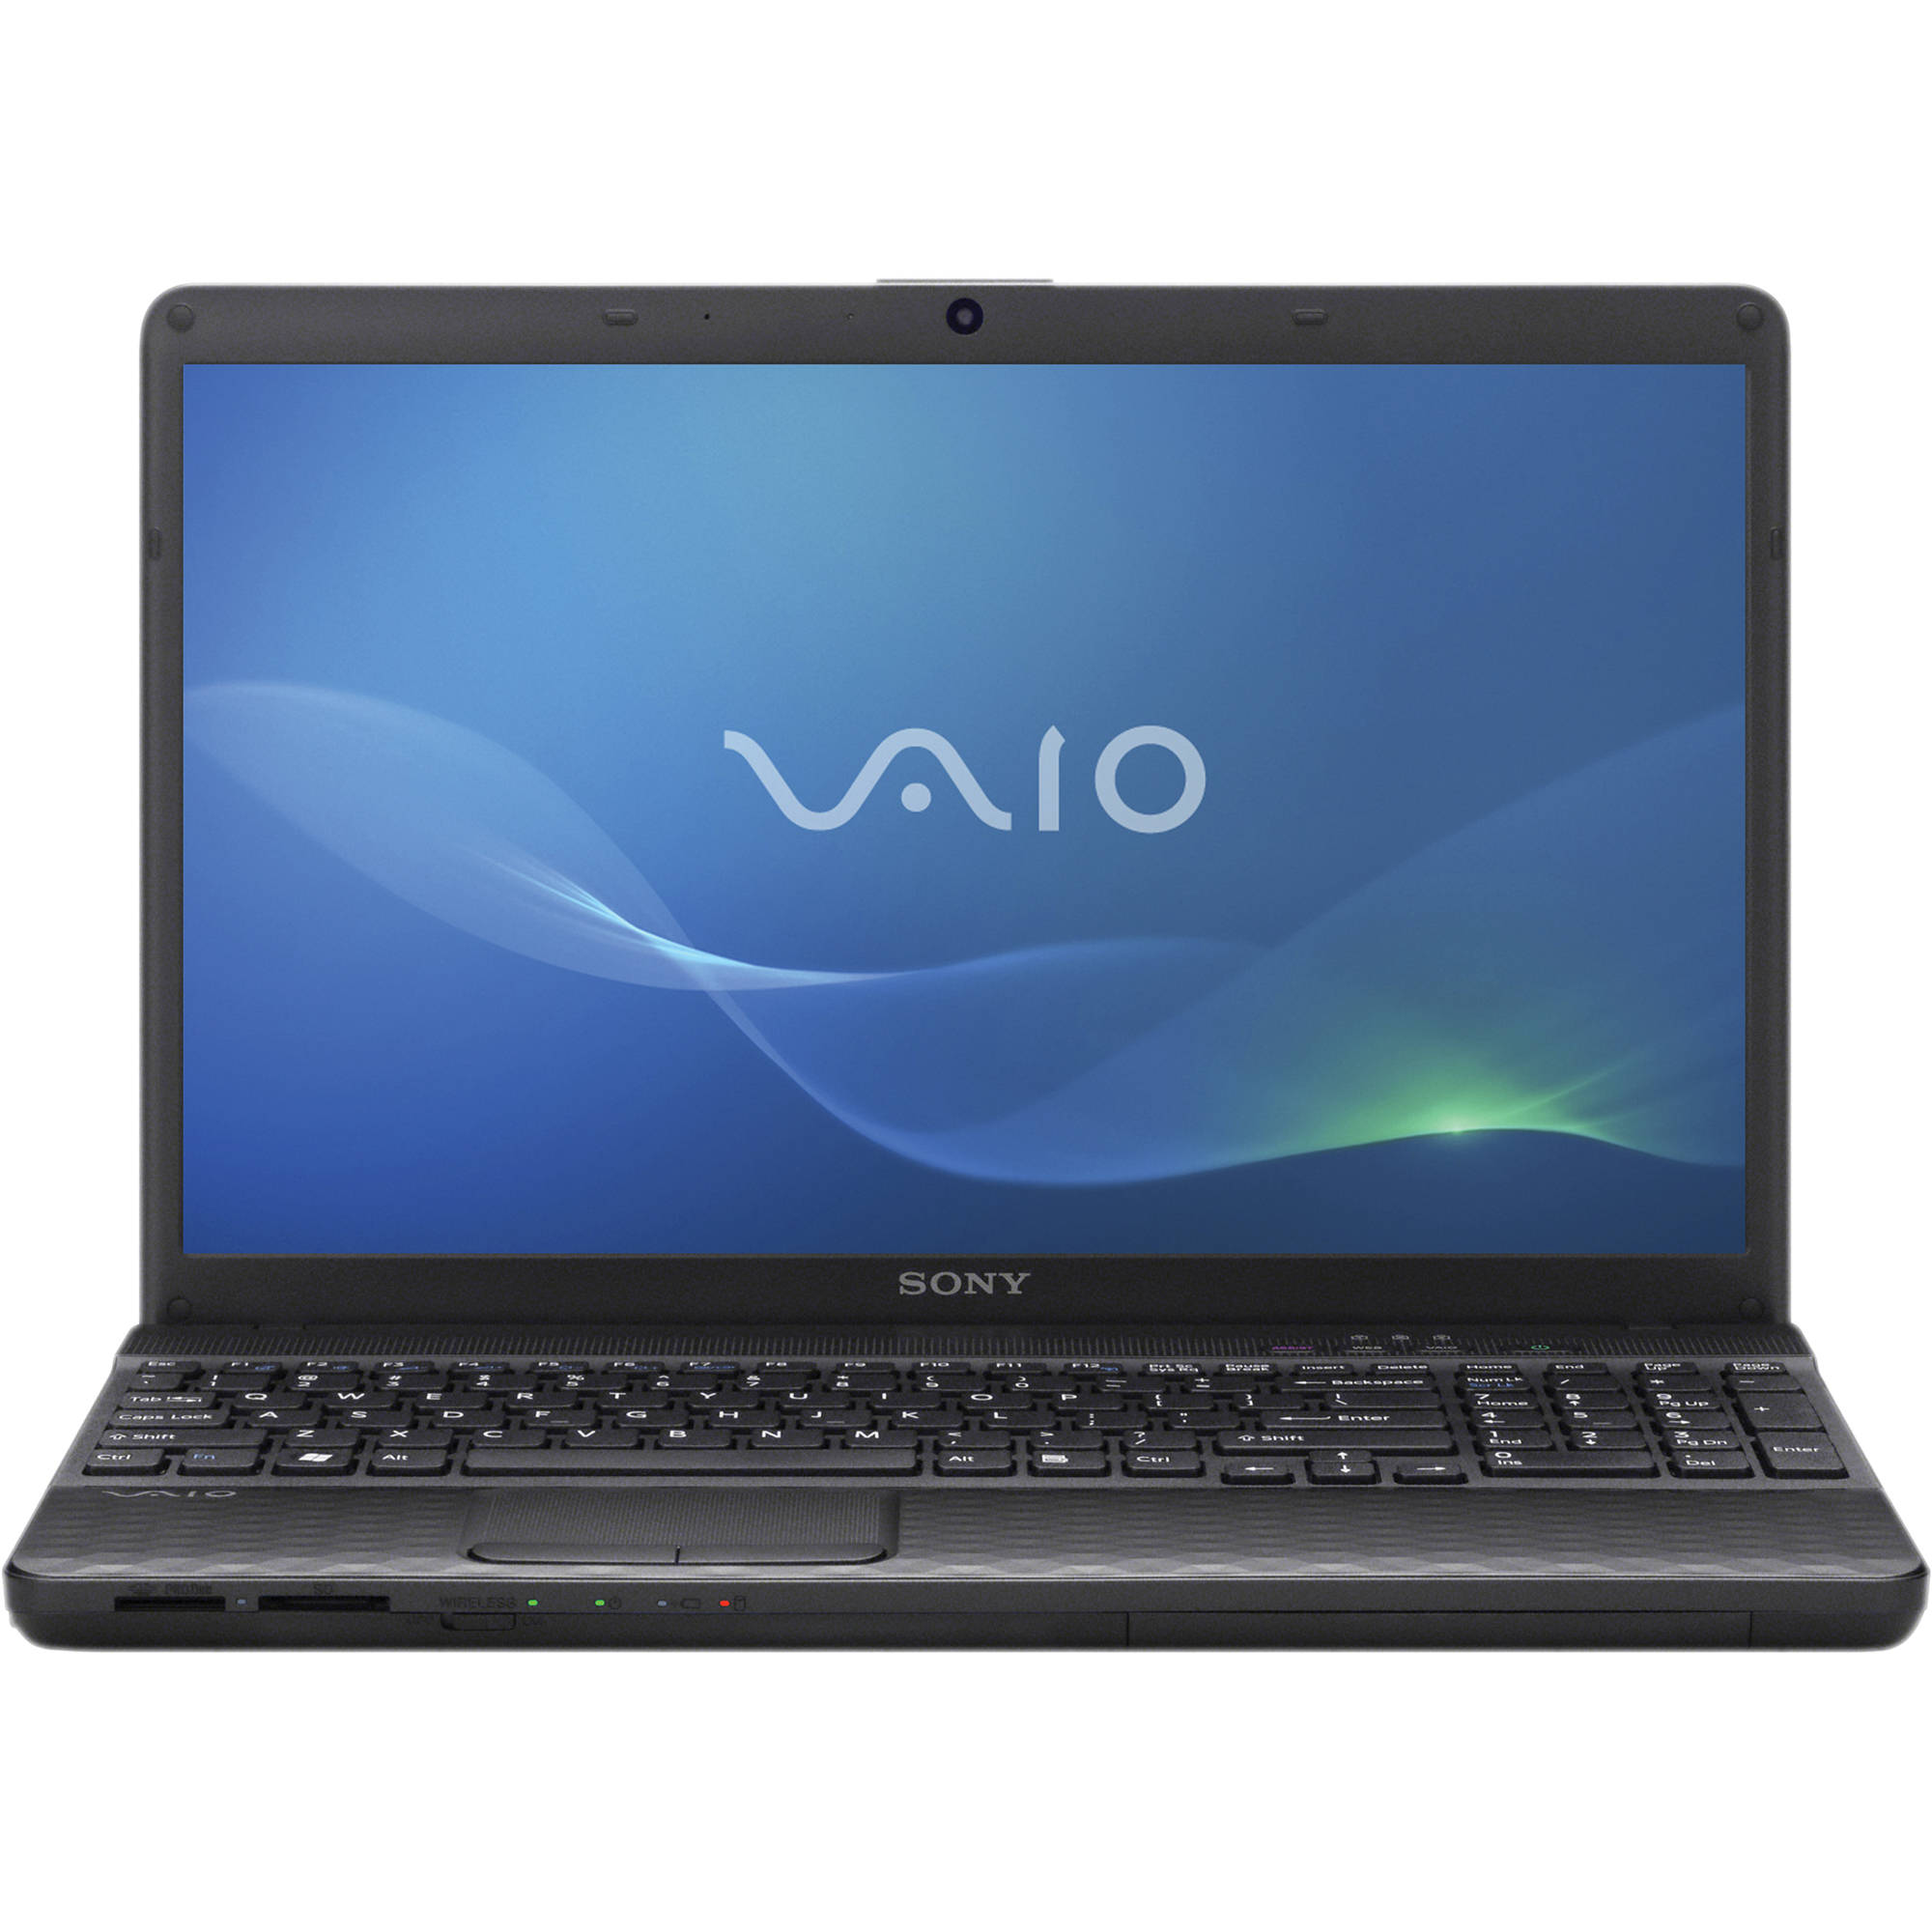 Sony Vaio VPCEH15FX/W Drivers Download